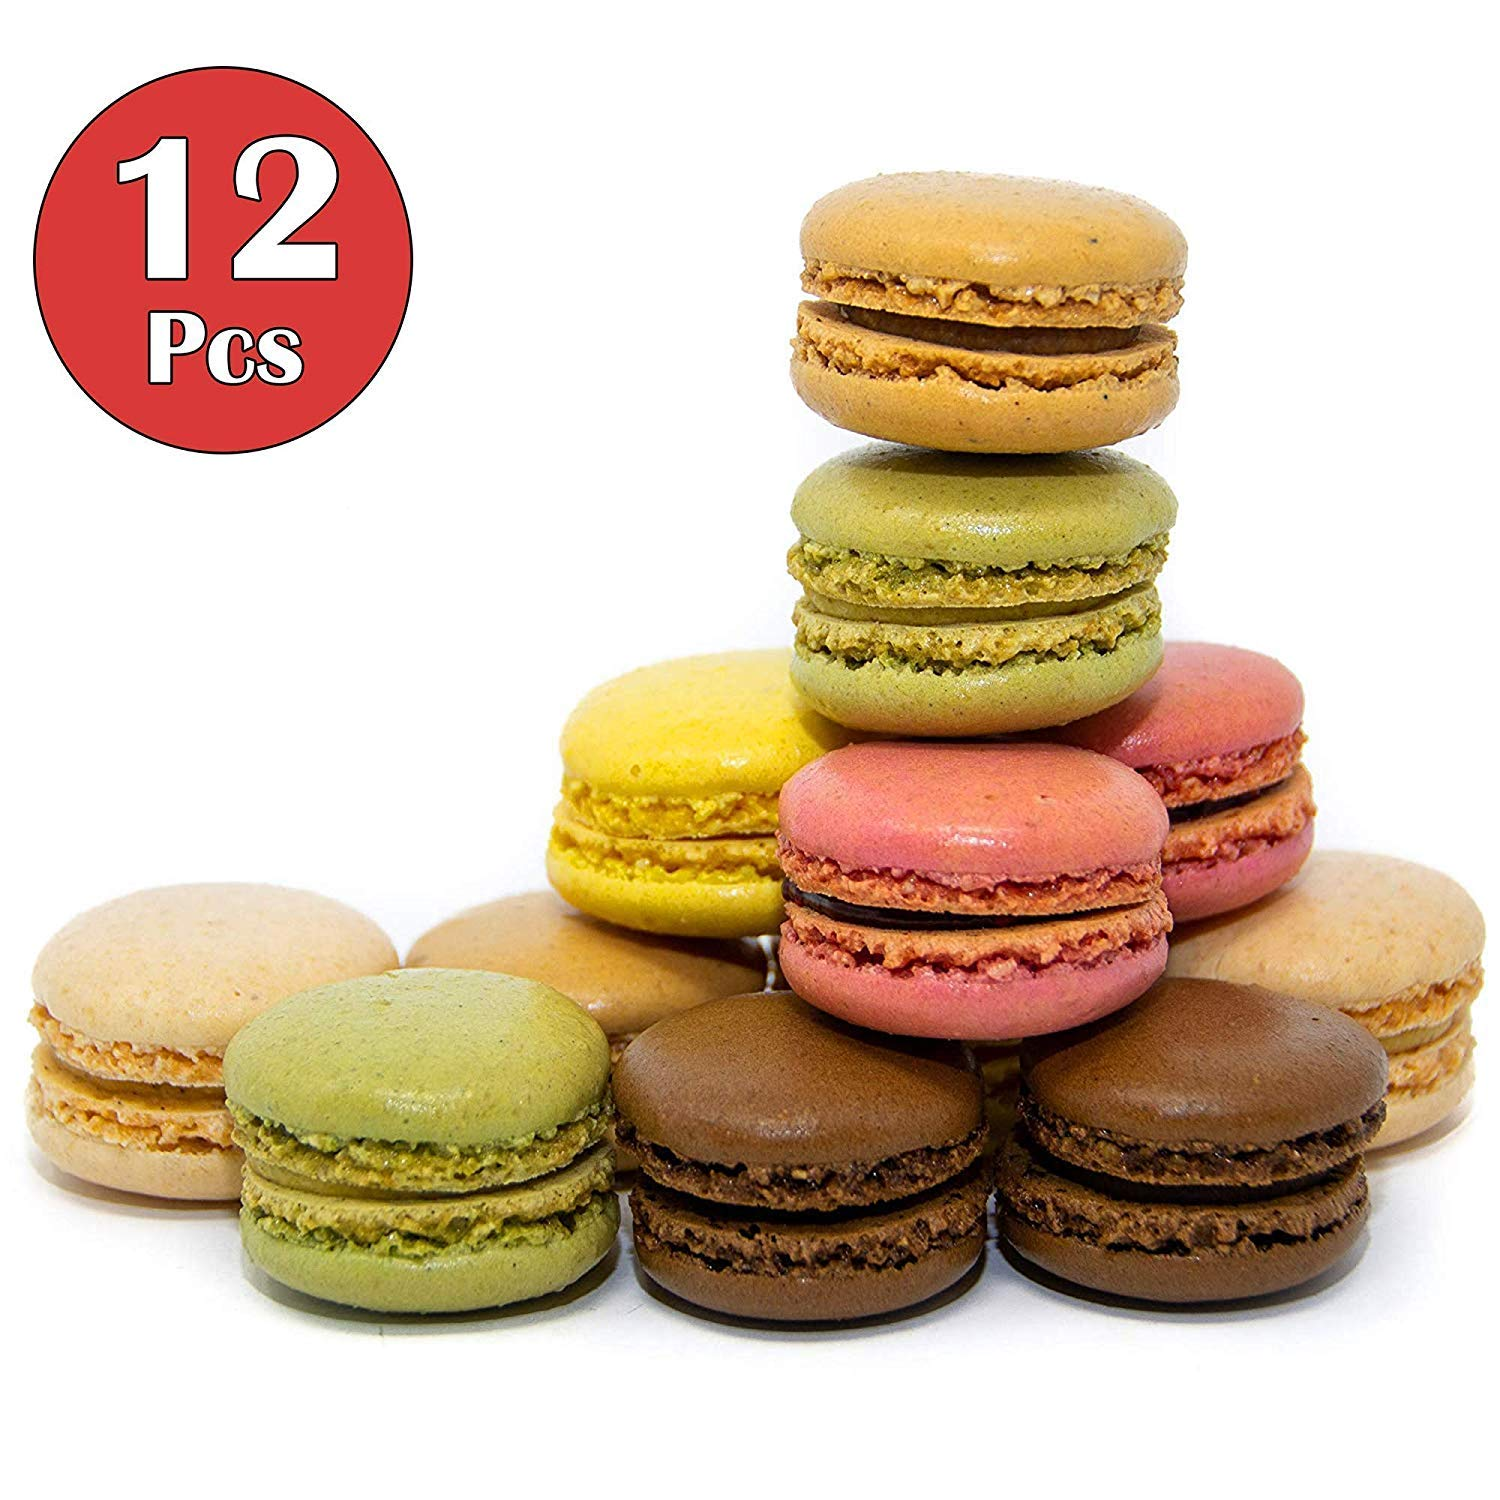 French Almond Macarons Gift - 12 pcs - Assorted Macaroons Cookies - Imported From France